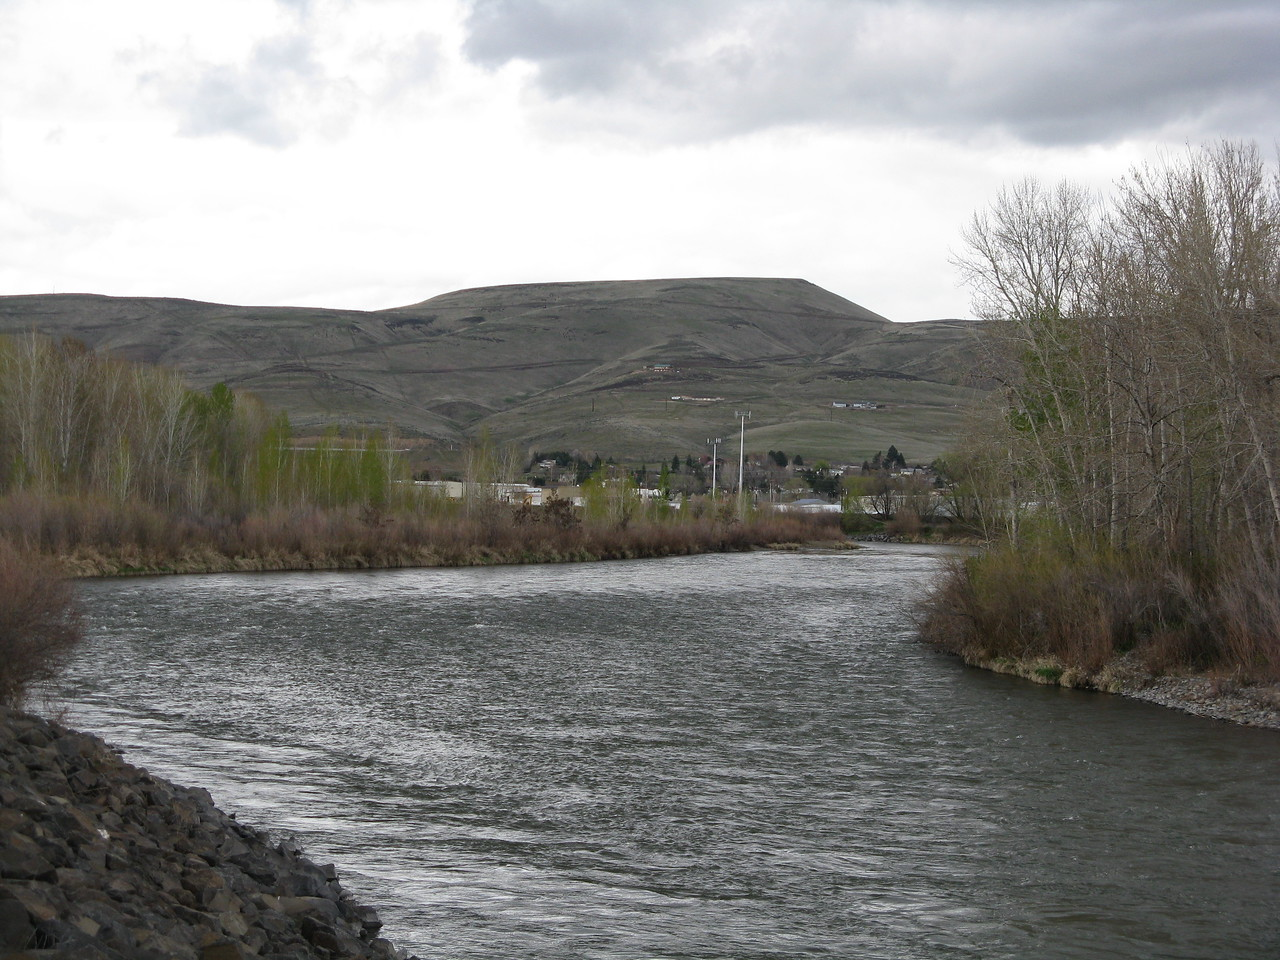 Heading north on the Yakima Greenway, this view is looking north east across the Yakima River to the hills beyond.